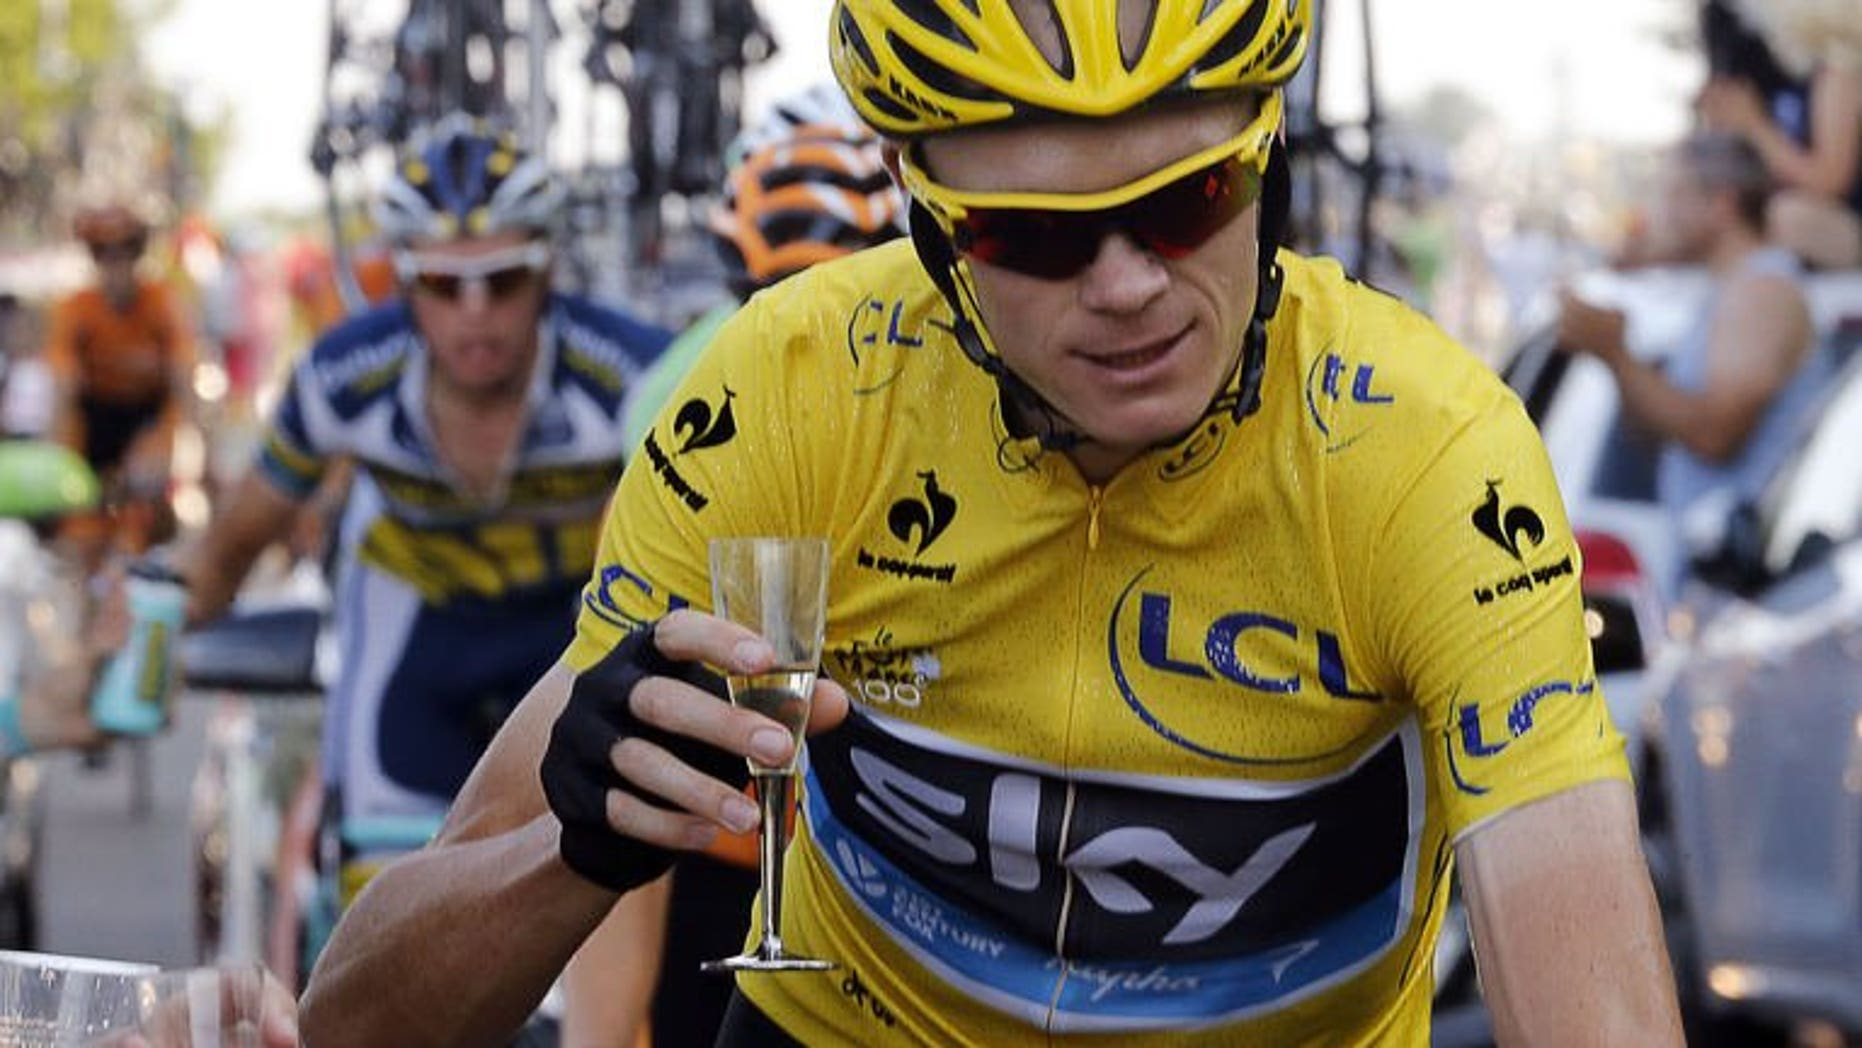 Overall leader's yellow jersey Britain's Chris Froome holds a glass of Champagne as he rides next to his team car, during the 133.5 km twenty-first and last stage of the 100th edition of the Tour de France cycling race on July 21, 2013 between Versailles and Paris. Froome was crowned champion of the 100th edition of the Tour de France.